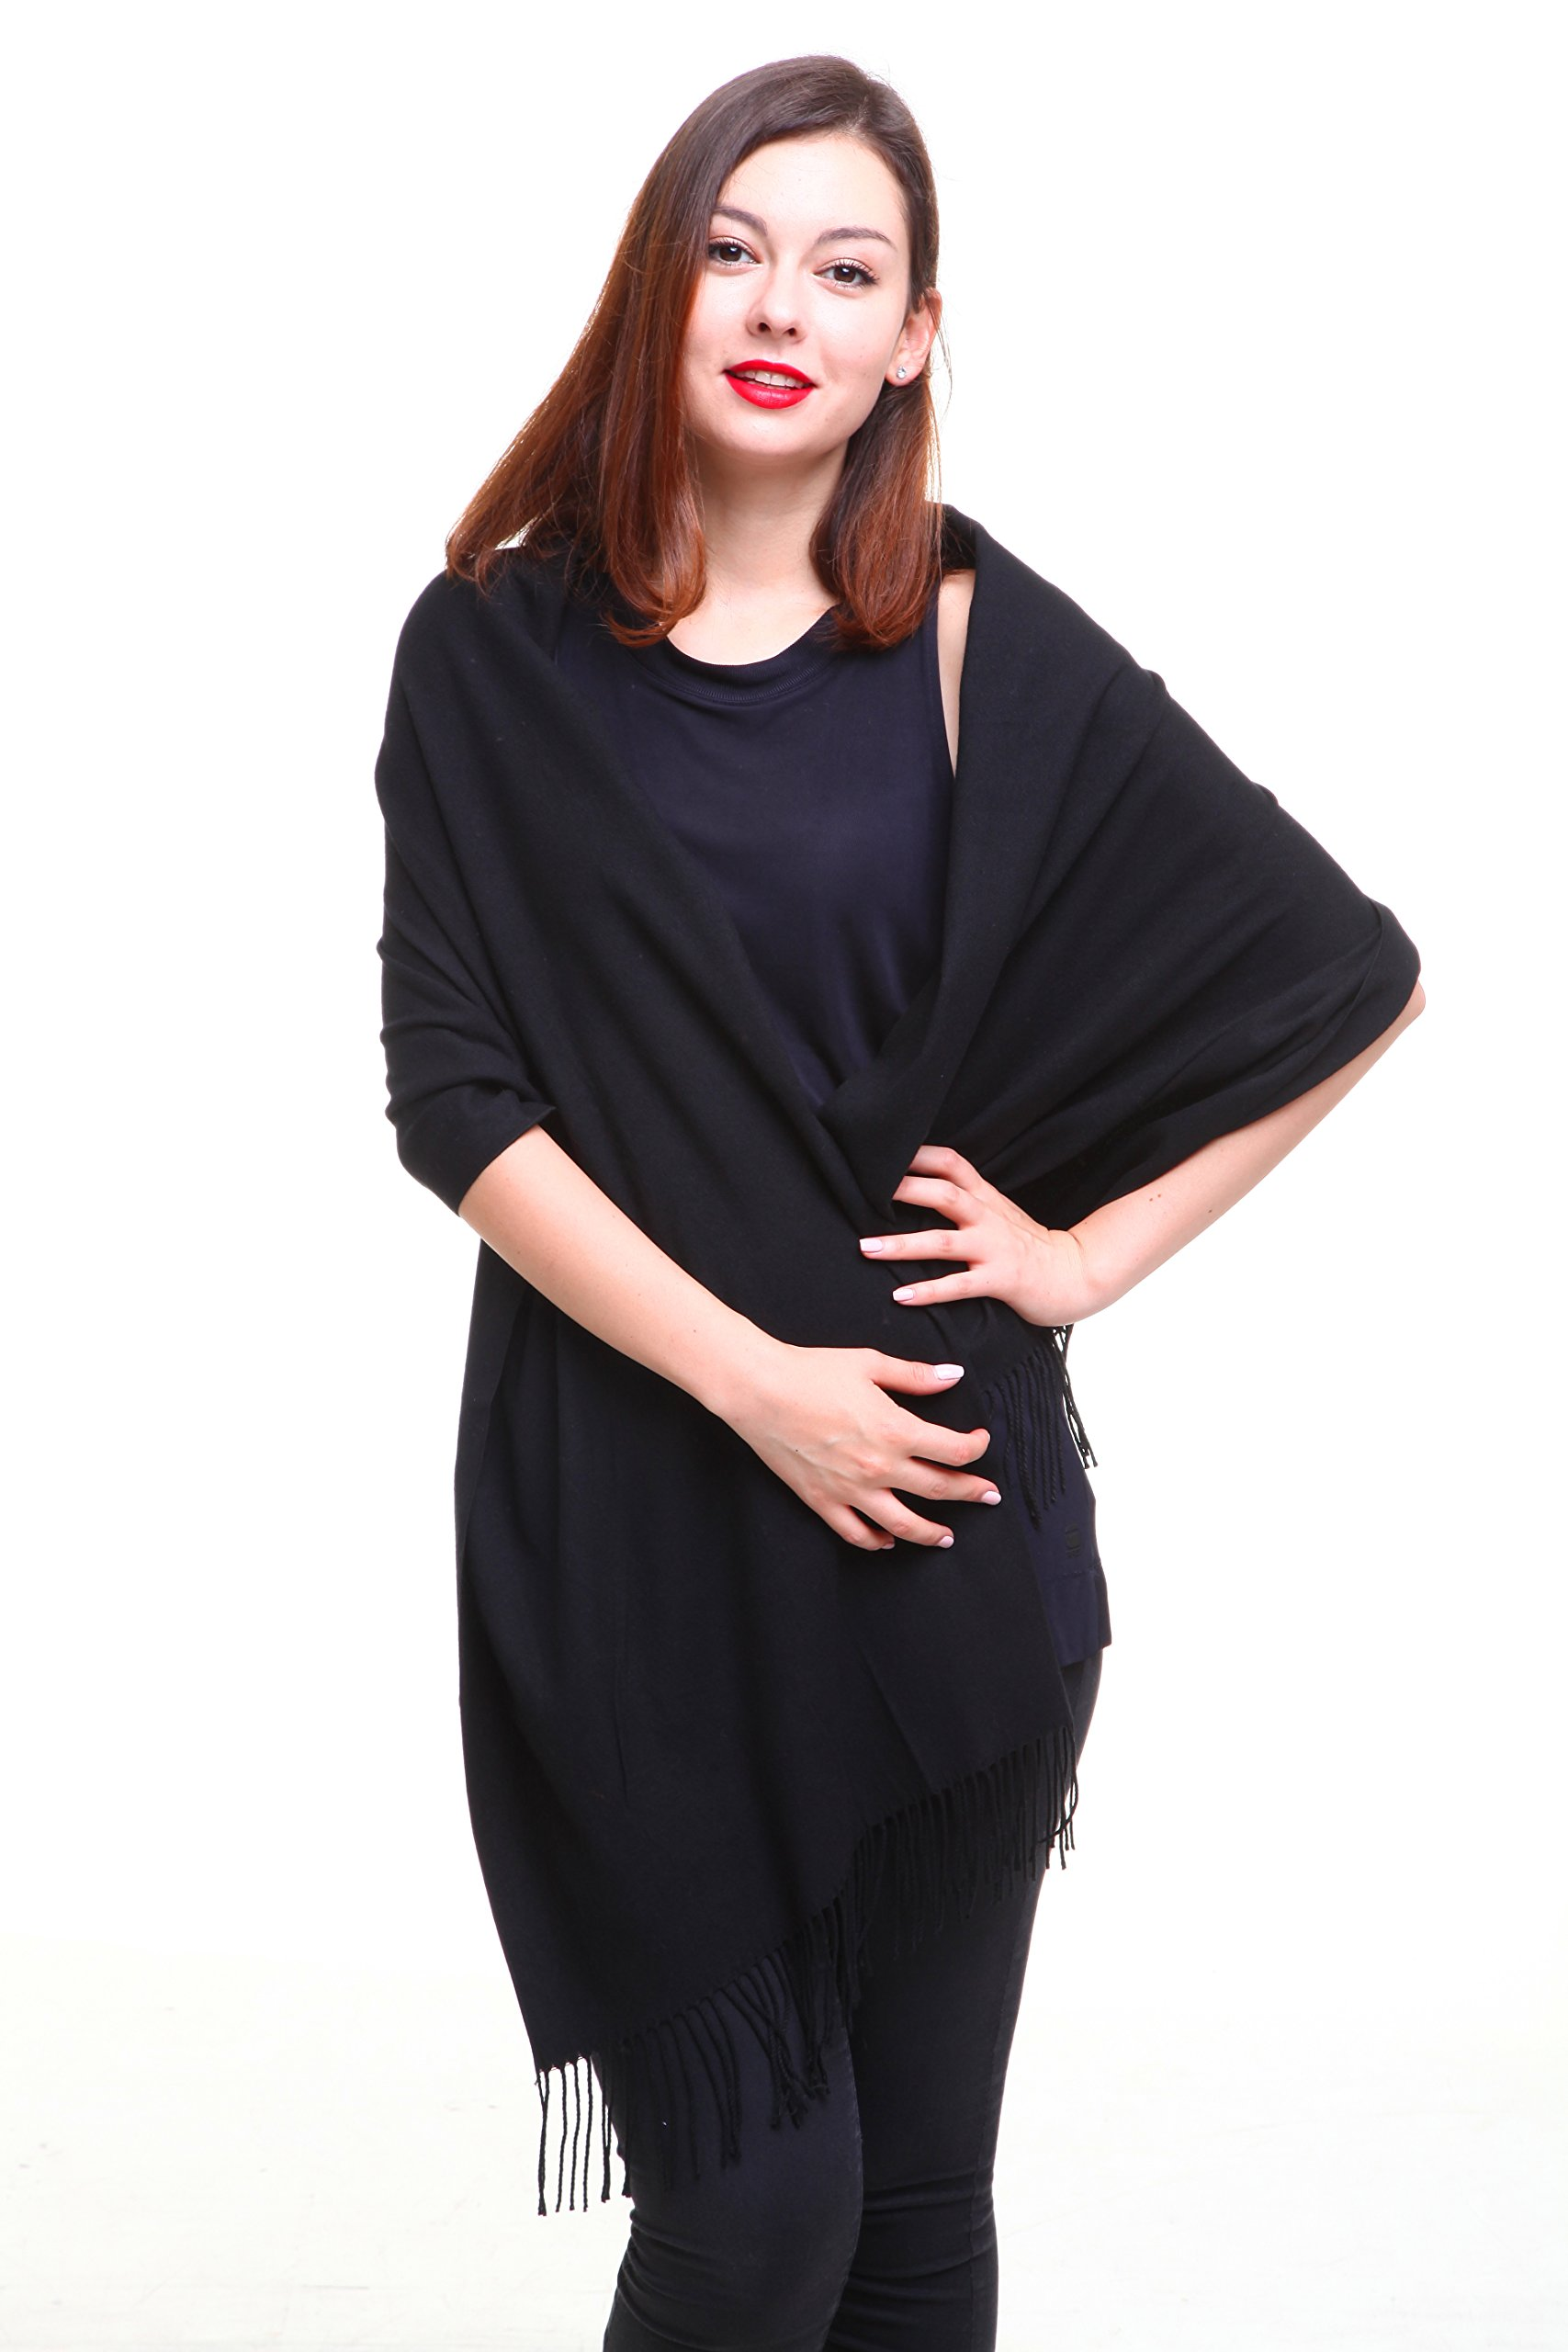 REEMONDE Womens Super Soft Long Shawl Solid Colors Warm Pashmina Big Scarf (Black) by SUNIN